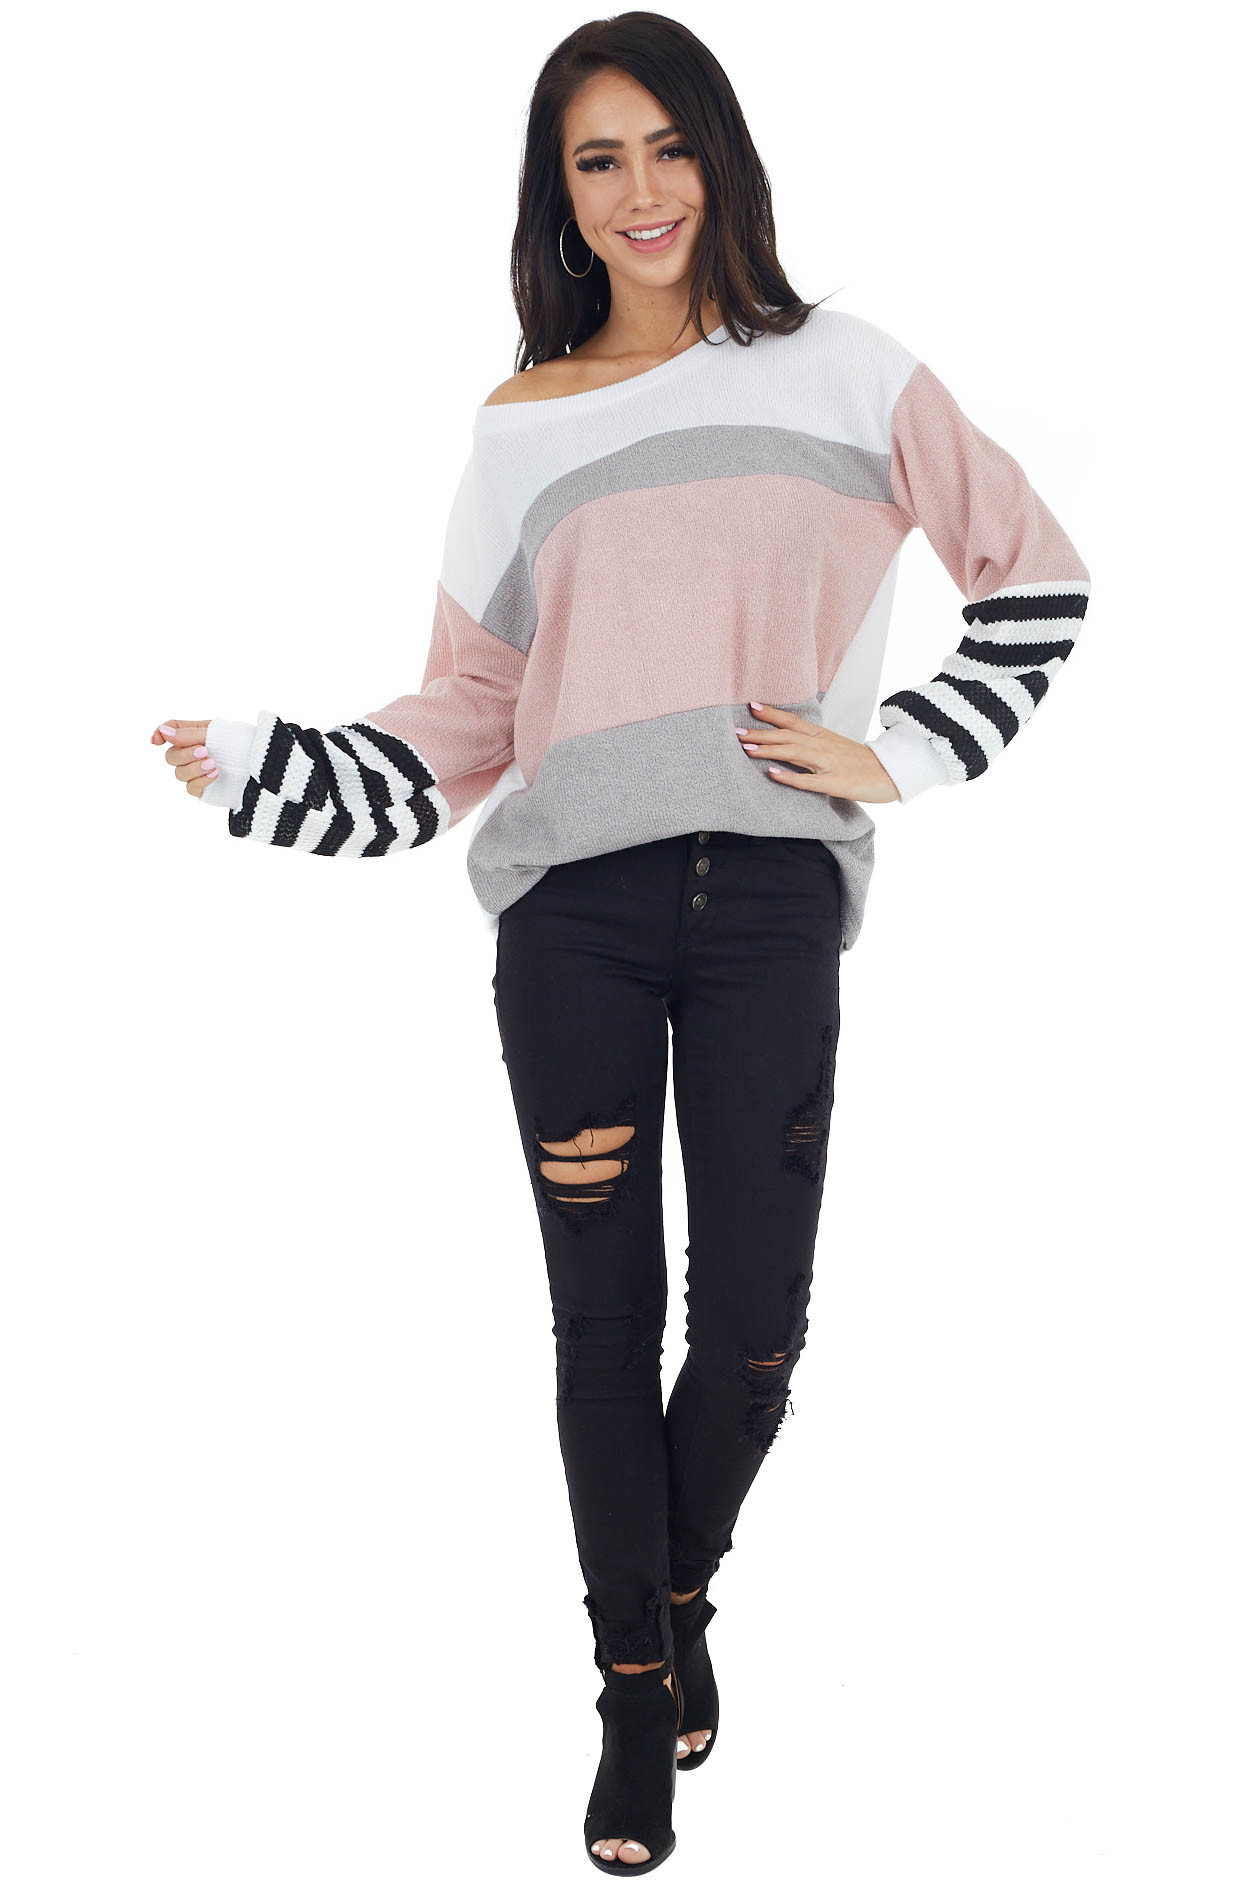 Dusty Blush and White Colorblock Top with Striped Contrast